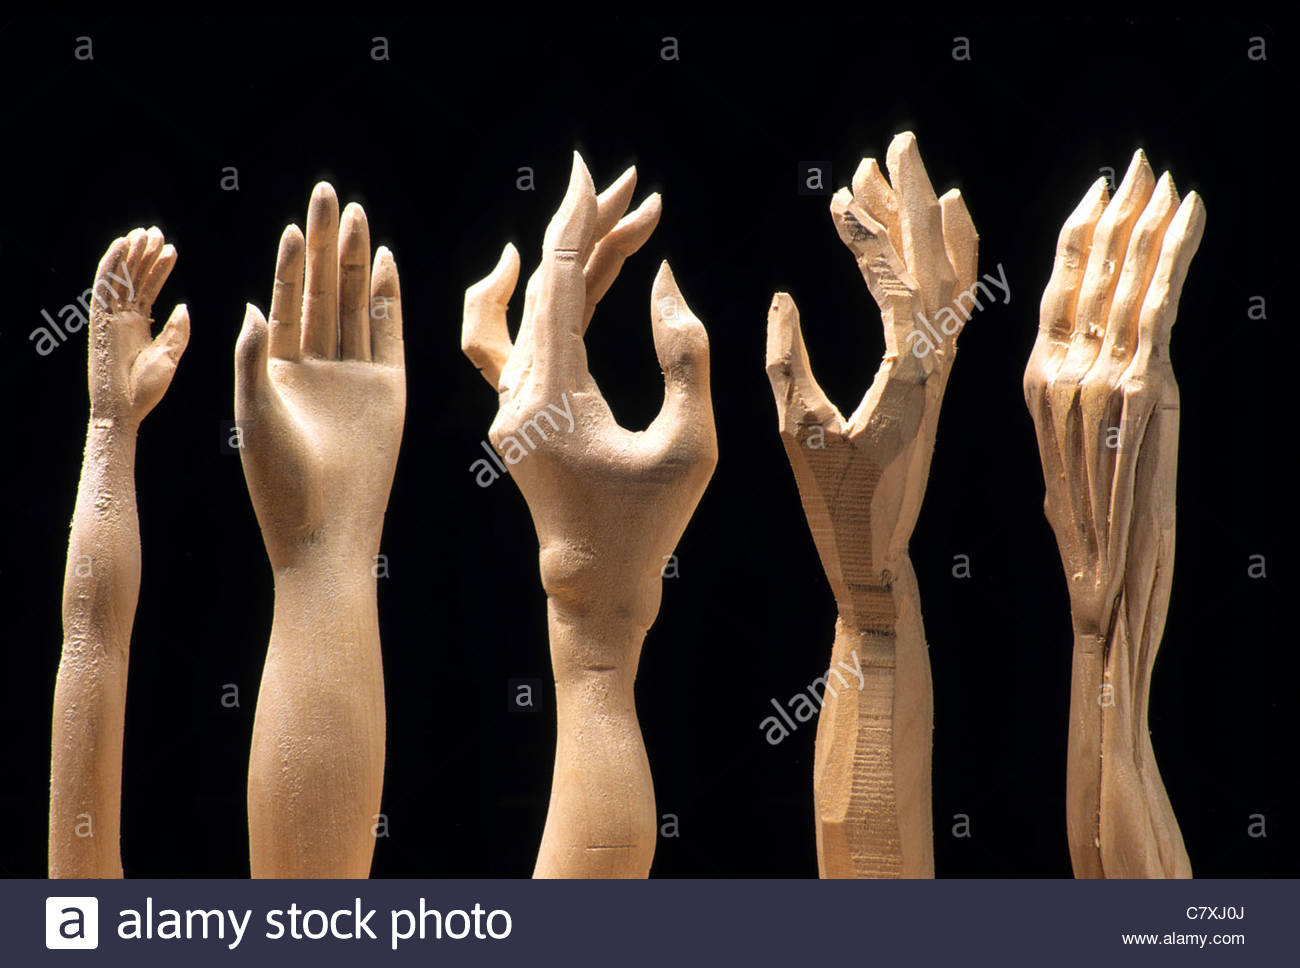 Five wooden carved hands - Stock Image